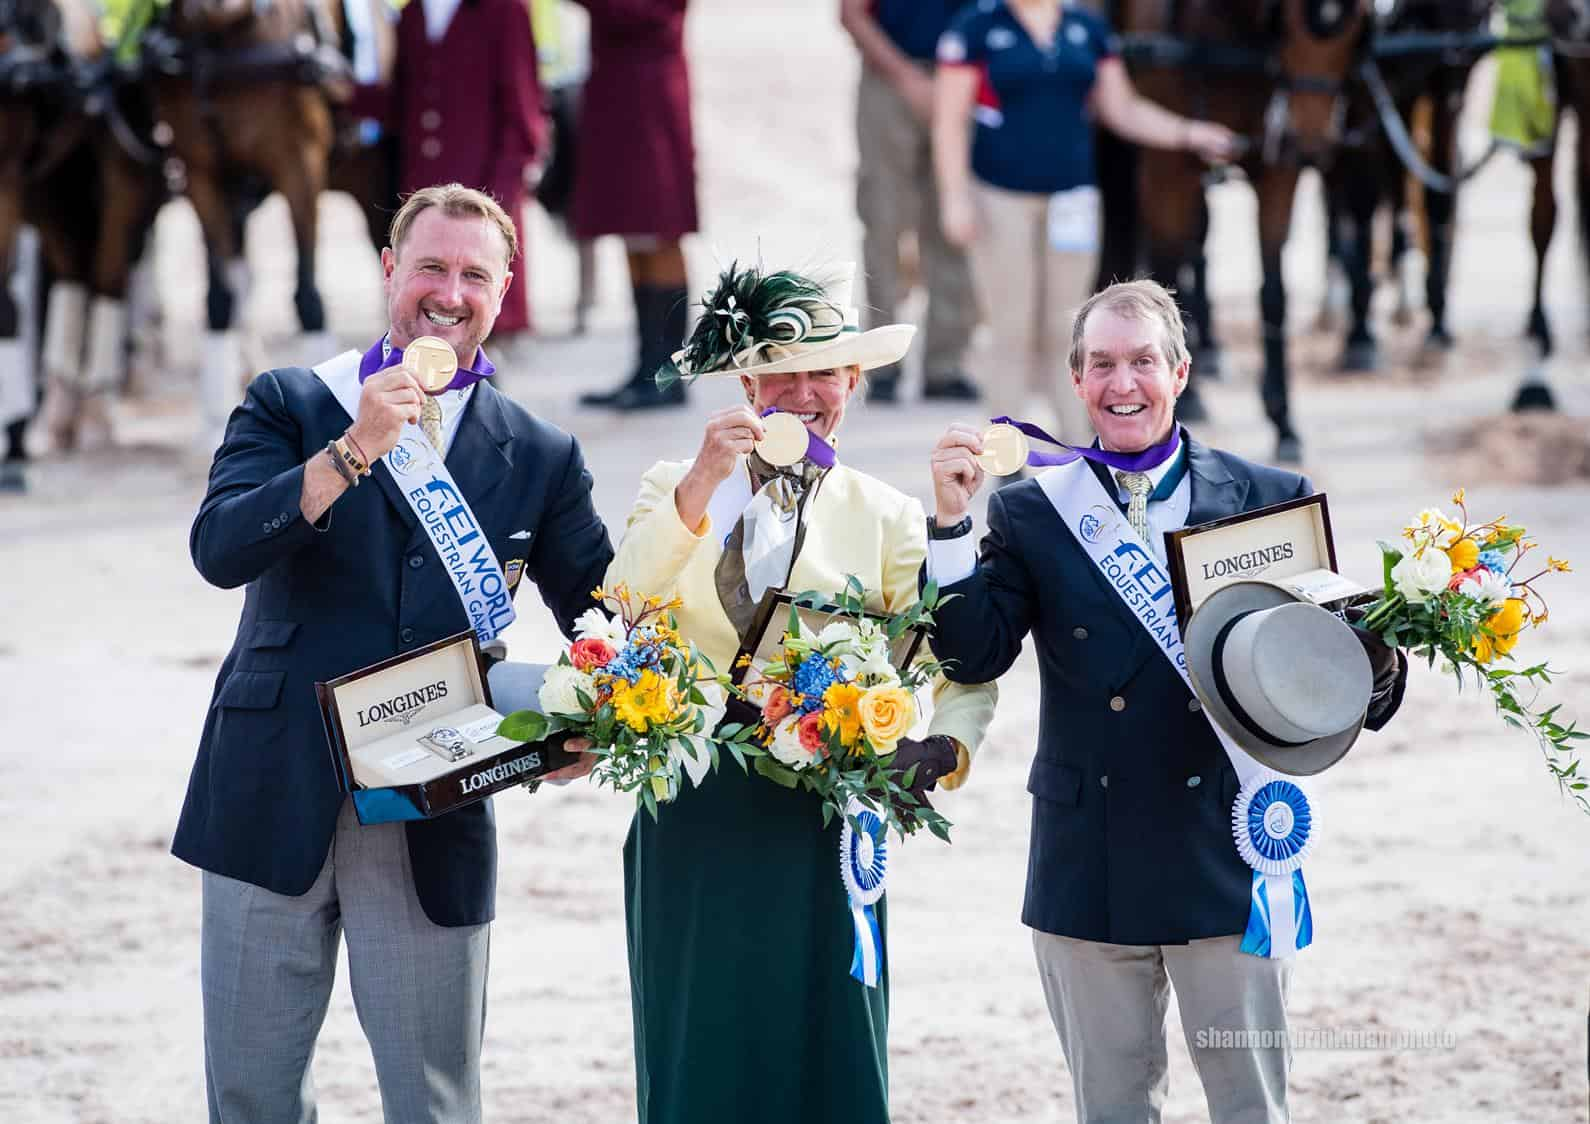 Chester Weber, Misdee Wrigley-Miller and Jimmy Fairclough celebrate their gold medal win (Shannon Brinkman Photo)